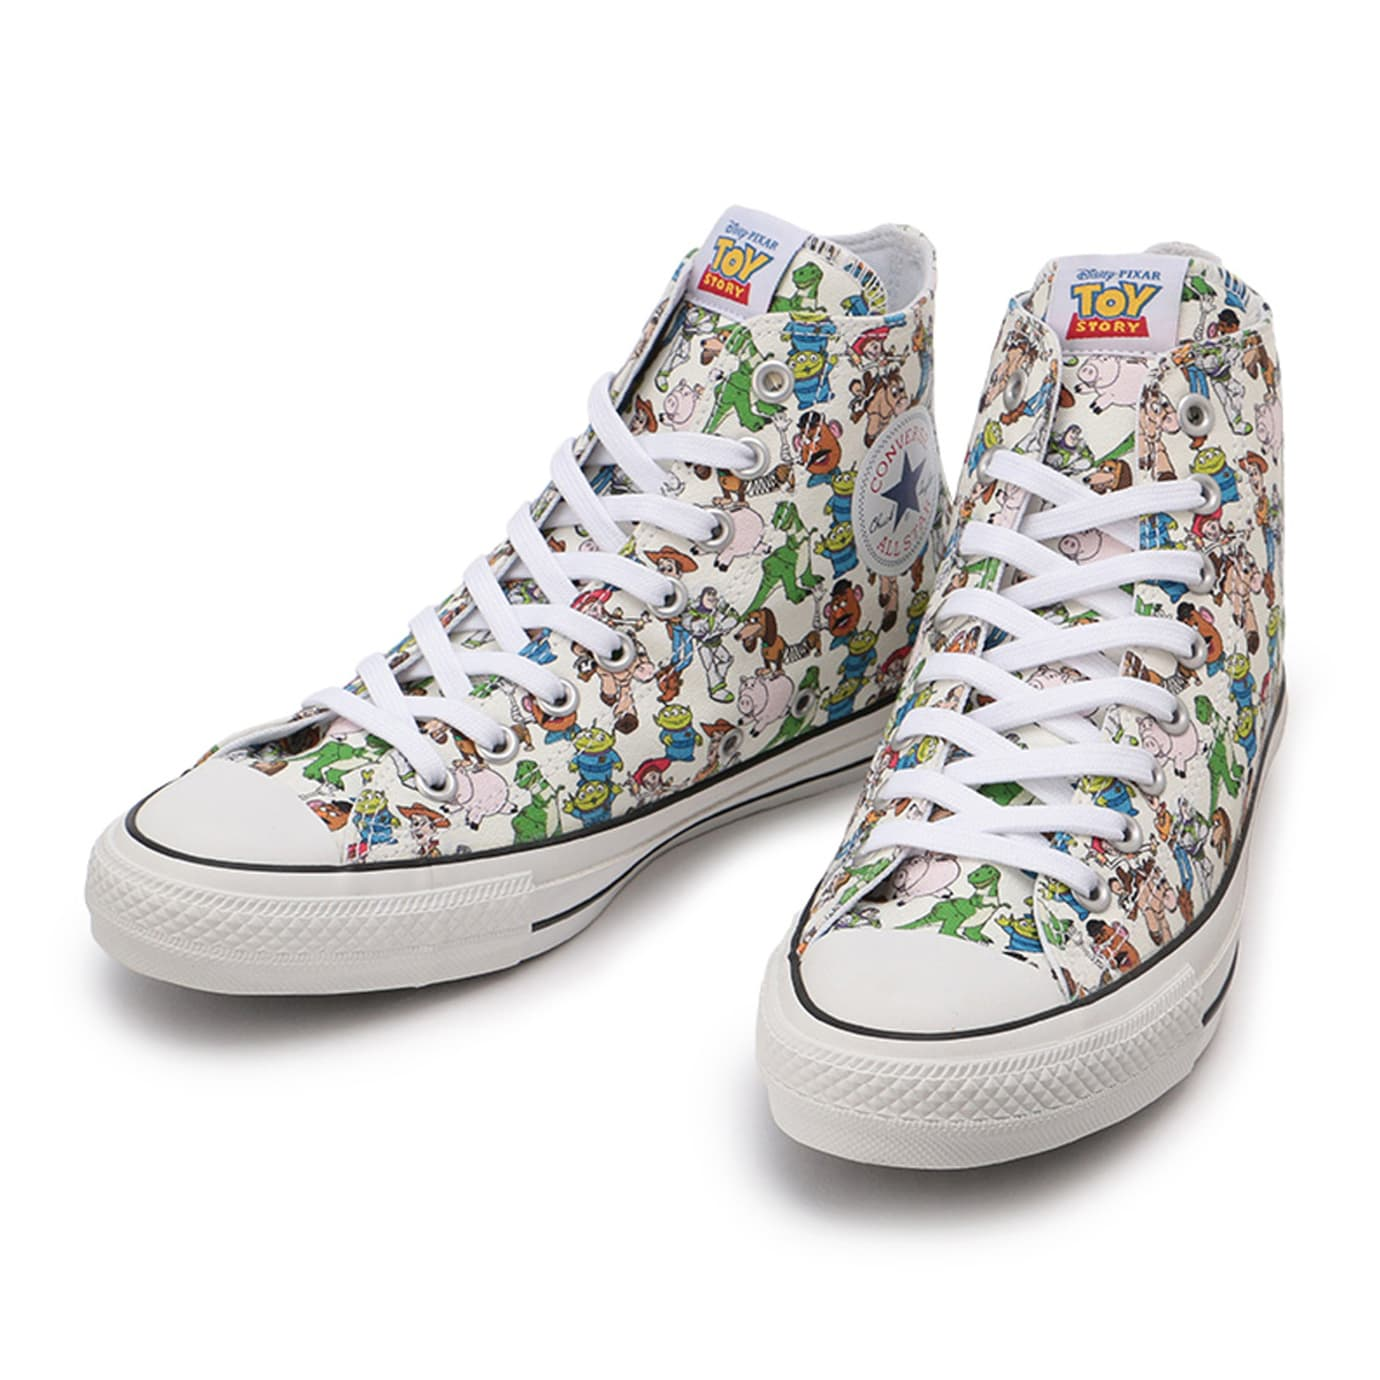 Toy Story x Converse Chuck Taylor All Star 329616600 1